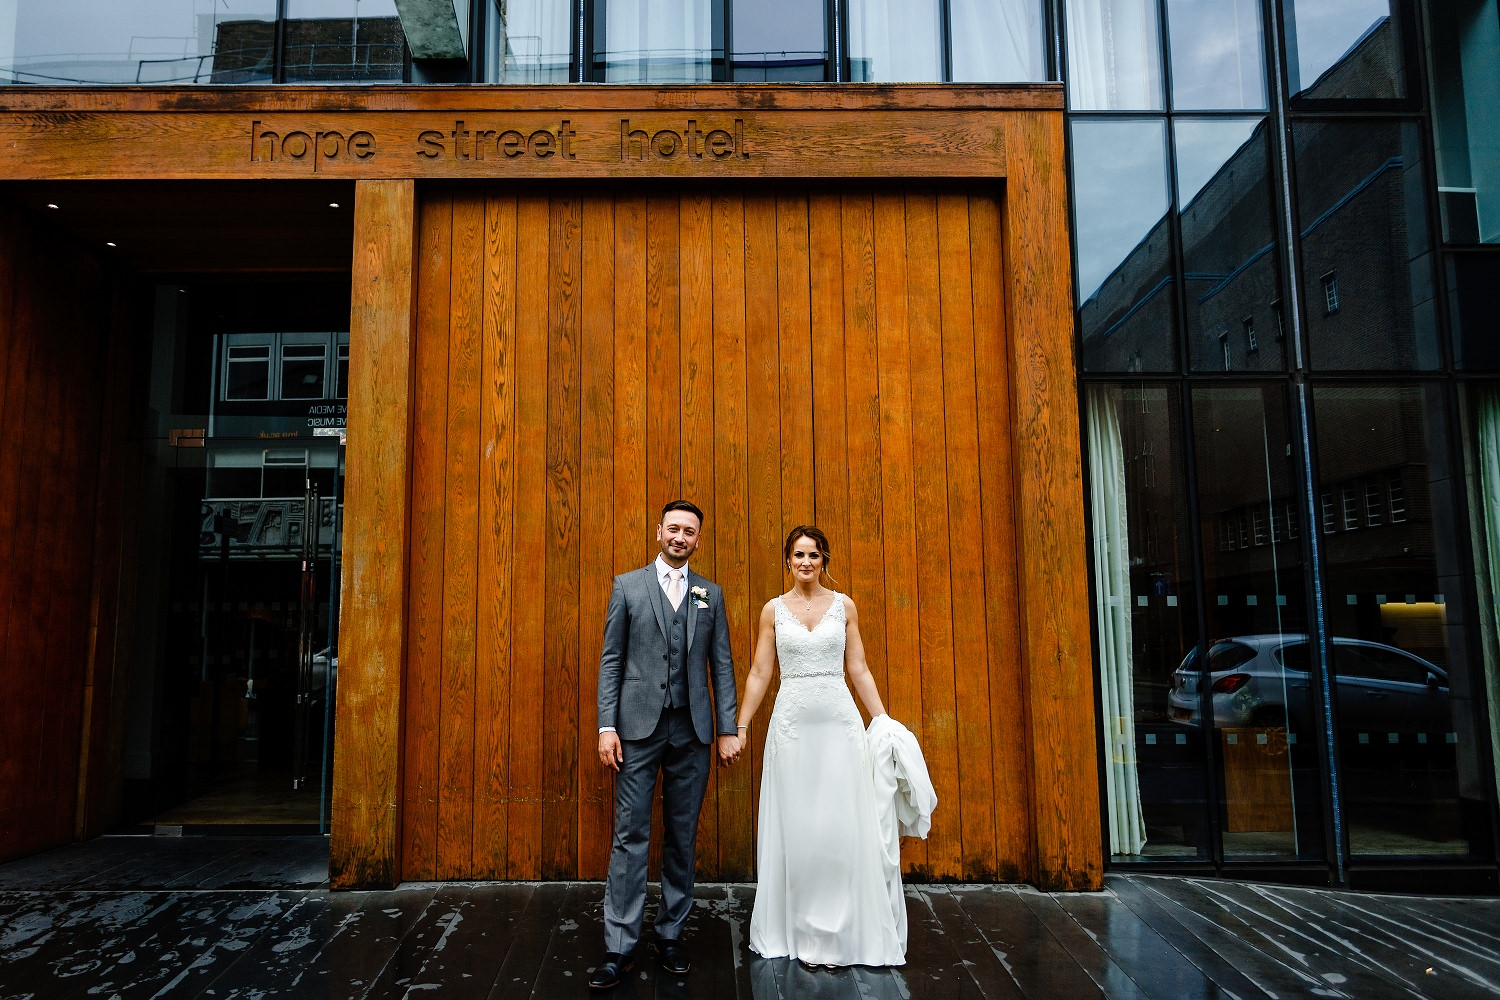 A Bride and Groom outside Hope Street Hotel on their wedding day